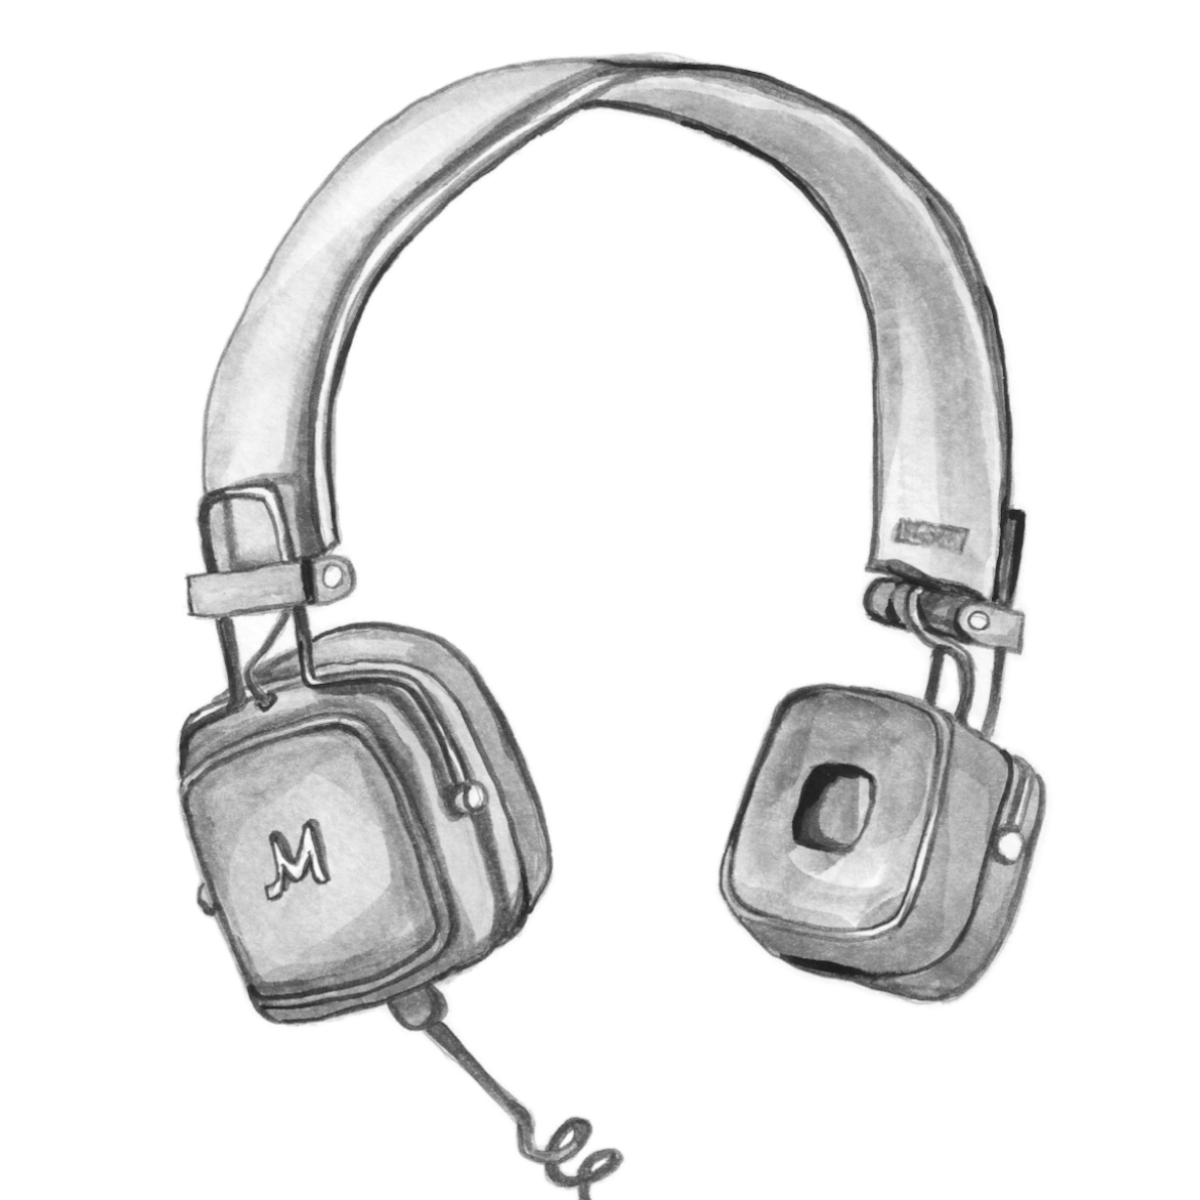 sketch of old fashioned headphones